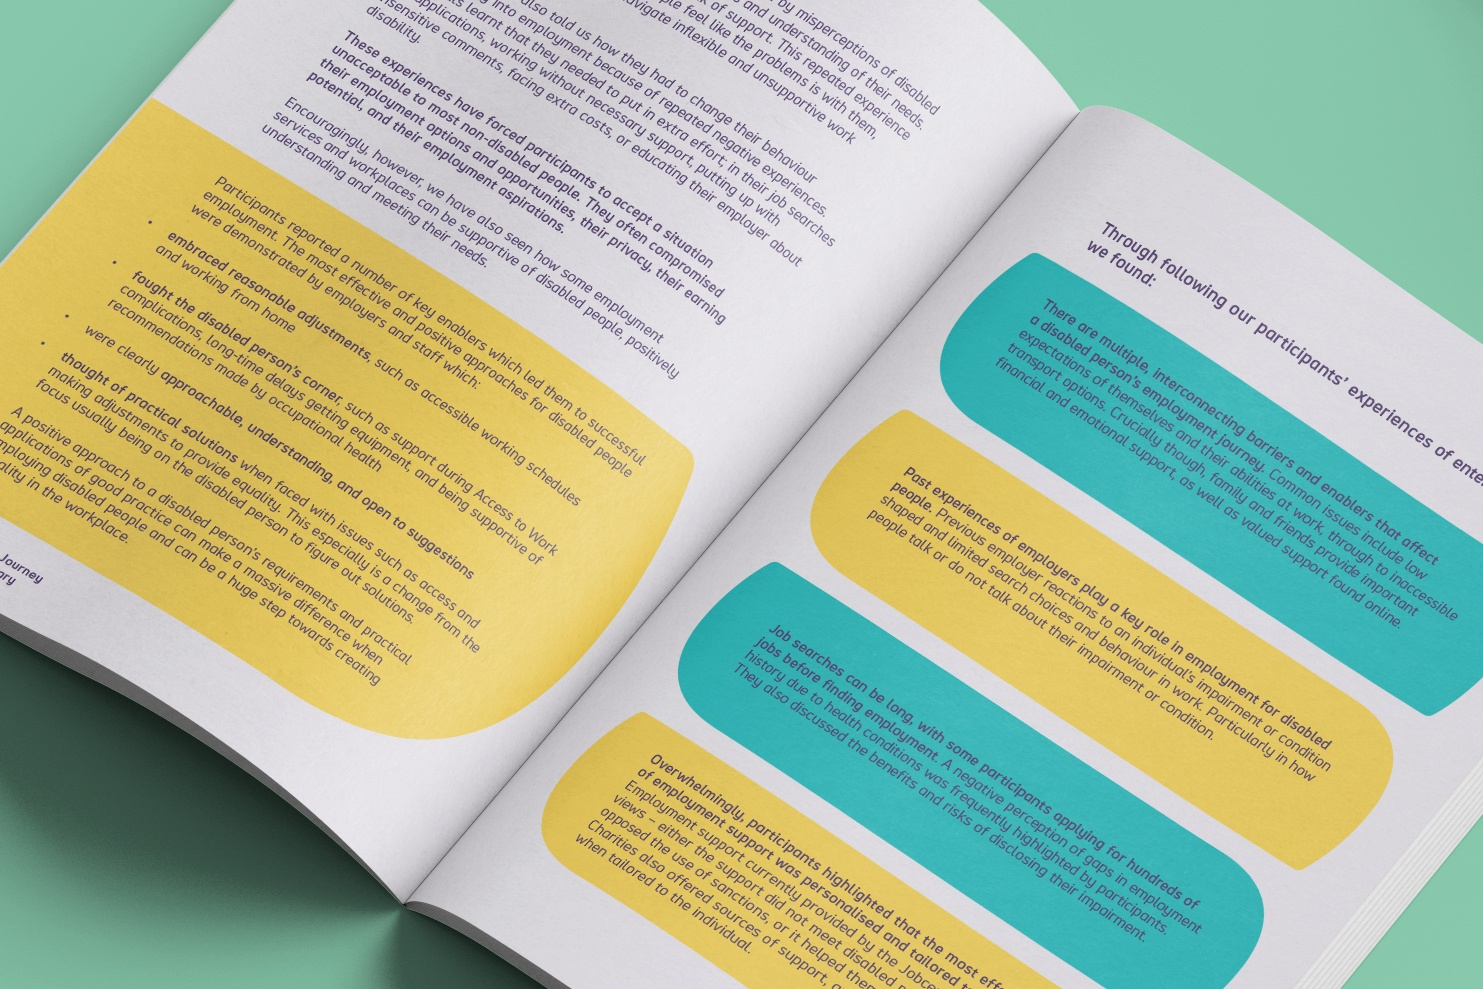 A spread from the report showing bright and colourful elements and simple layout